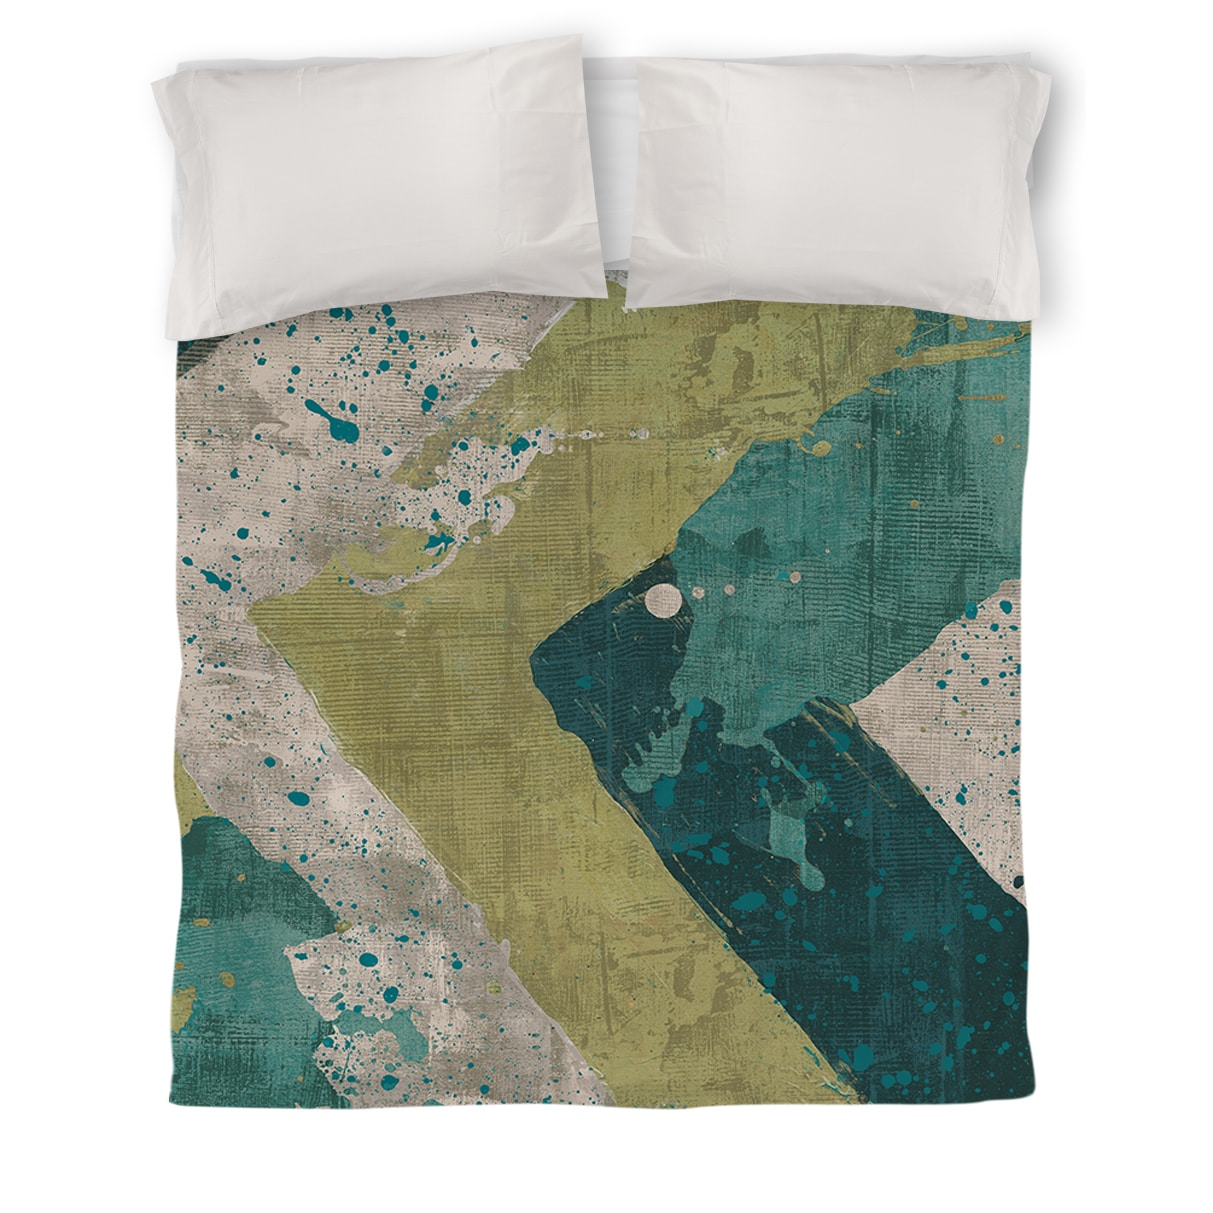 IDG Green Splatter Duvet Cover